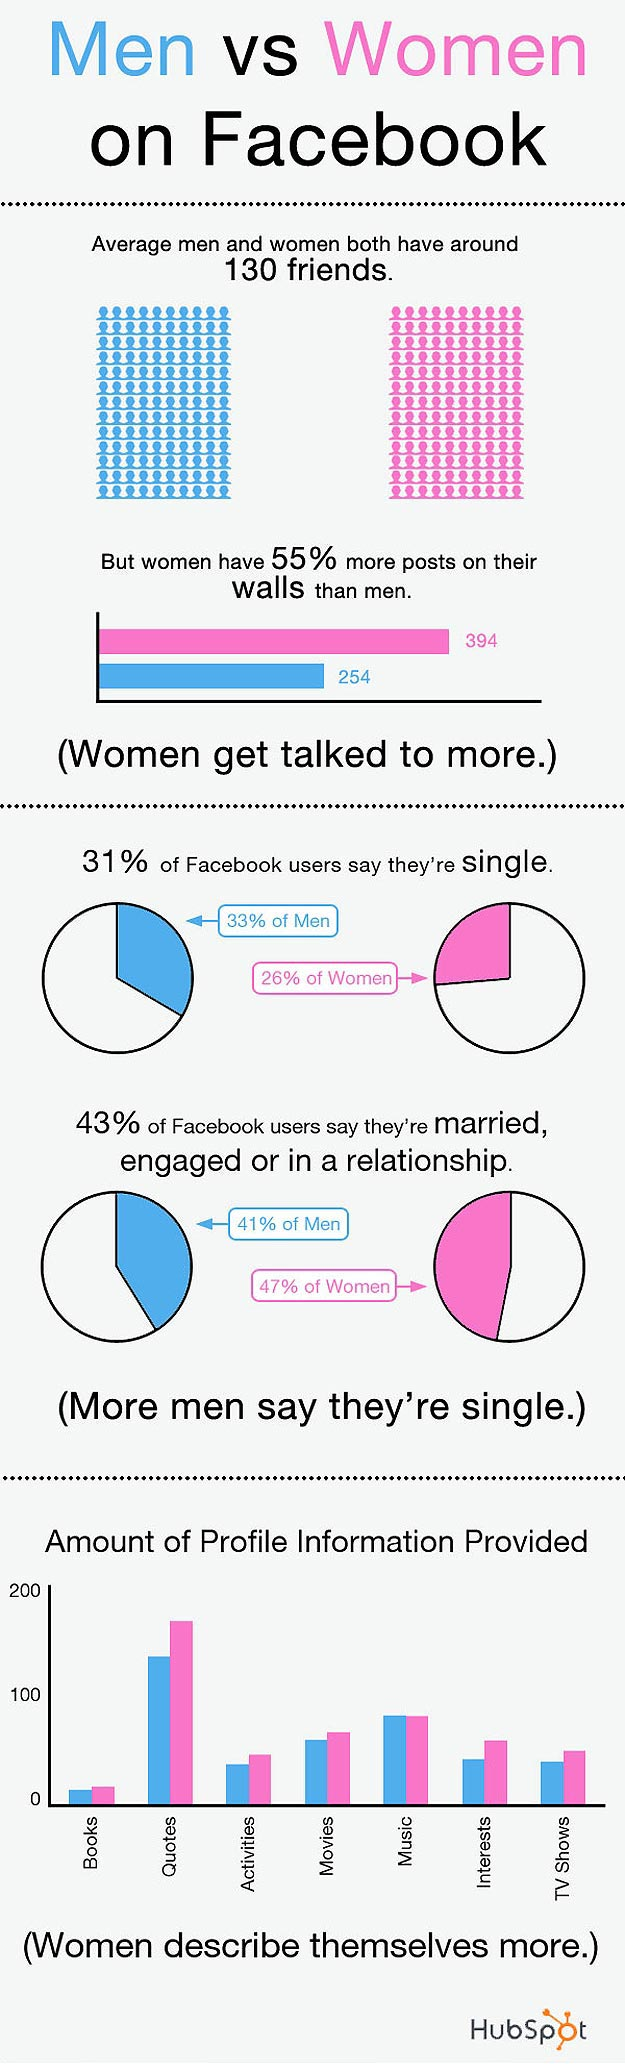 Gender Differences: Men vs. Women on Facebook